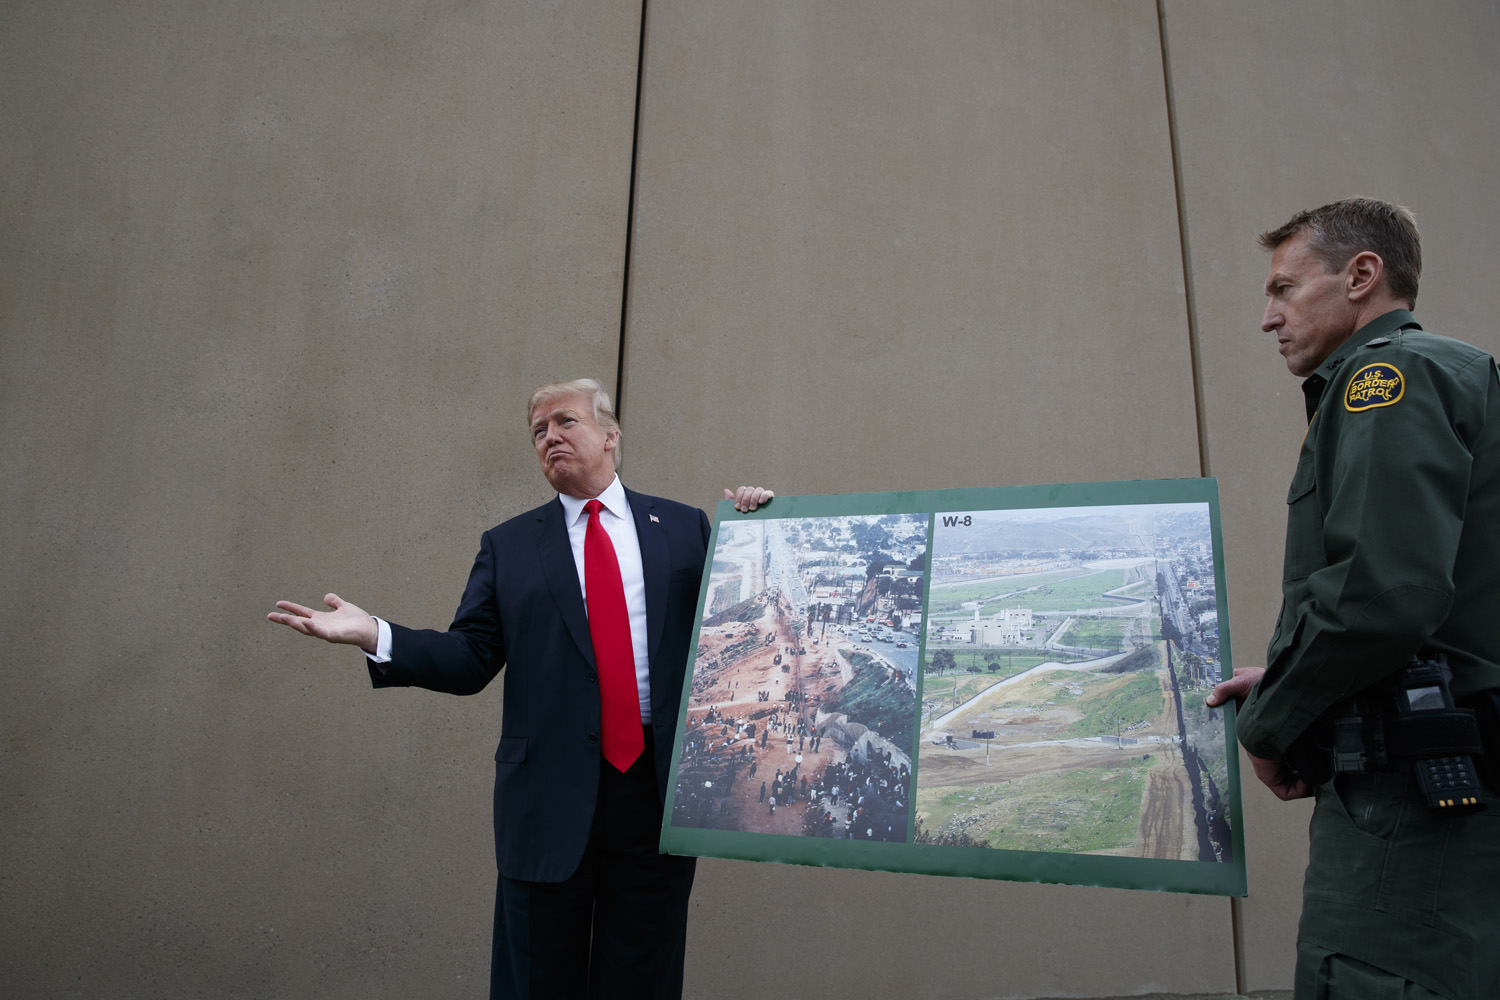 President Donald Trump talks with reporters as he gets a briefing on border wall prototypes, Tuesday, March 13, 2018, in San Diego. (AP Photo/Evan Vucci)